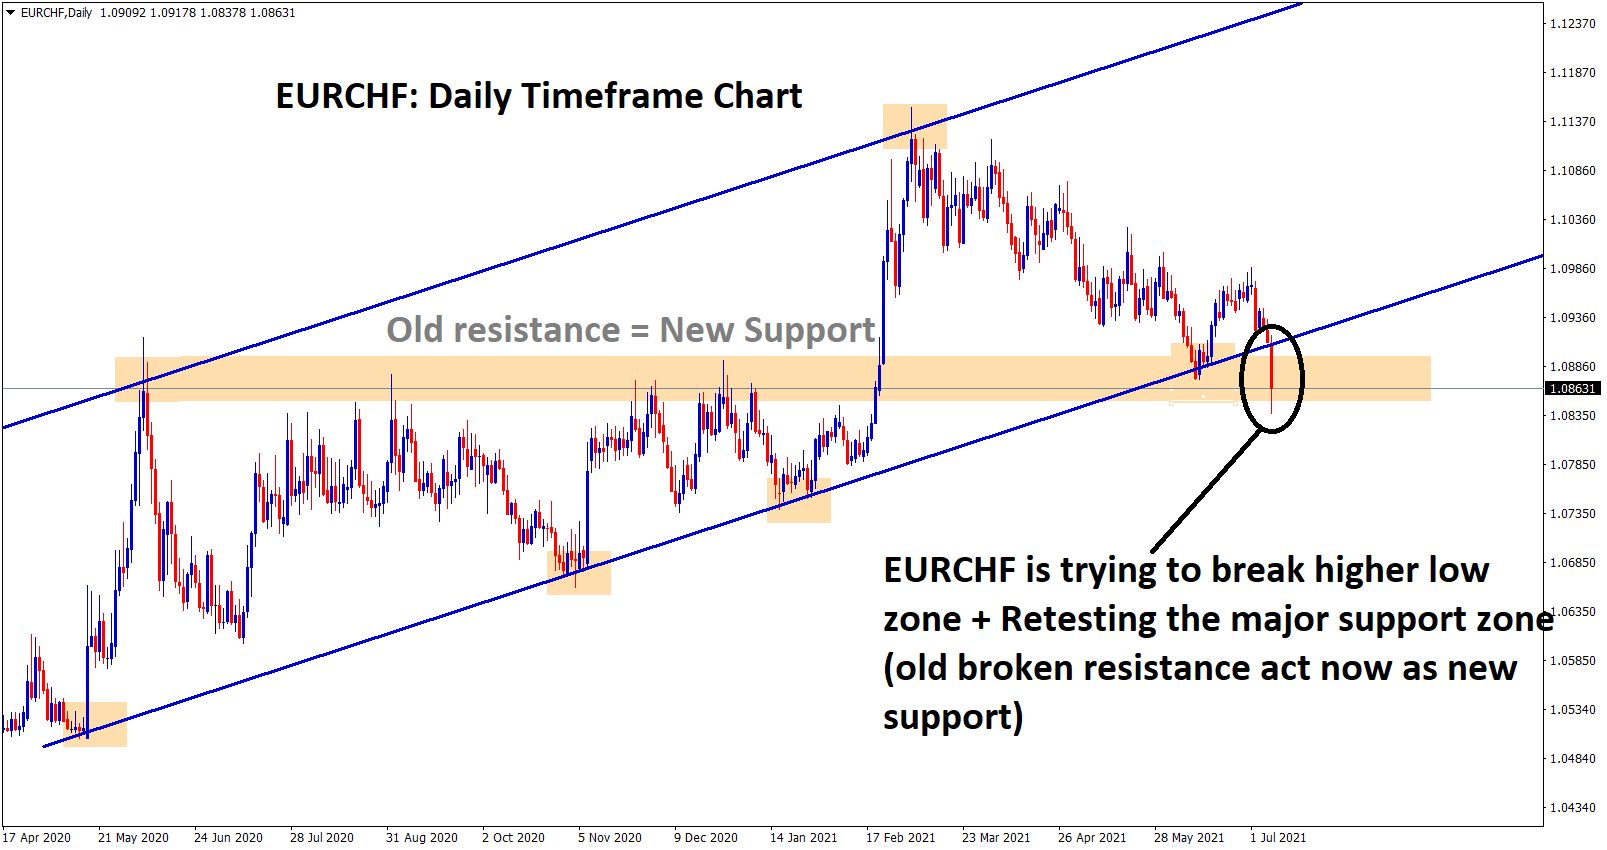 EURCHF is trying to break the higher low and retesting the major supprot